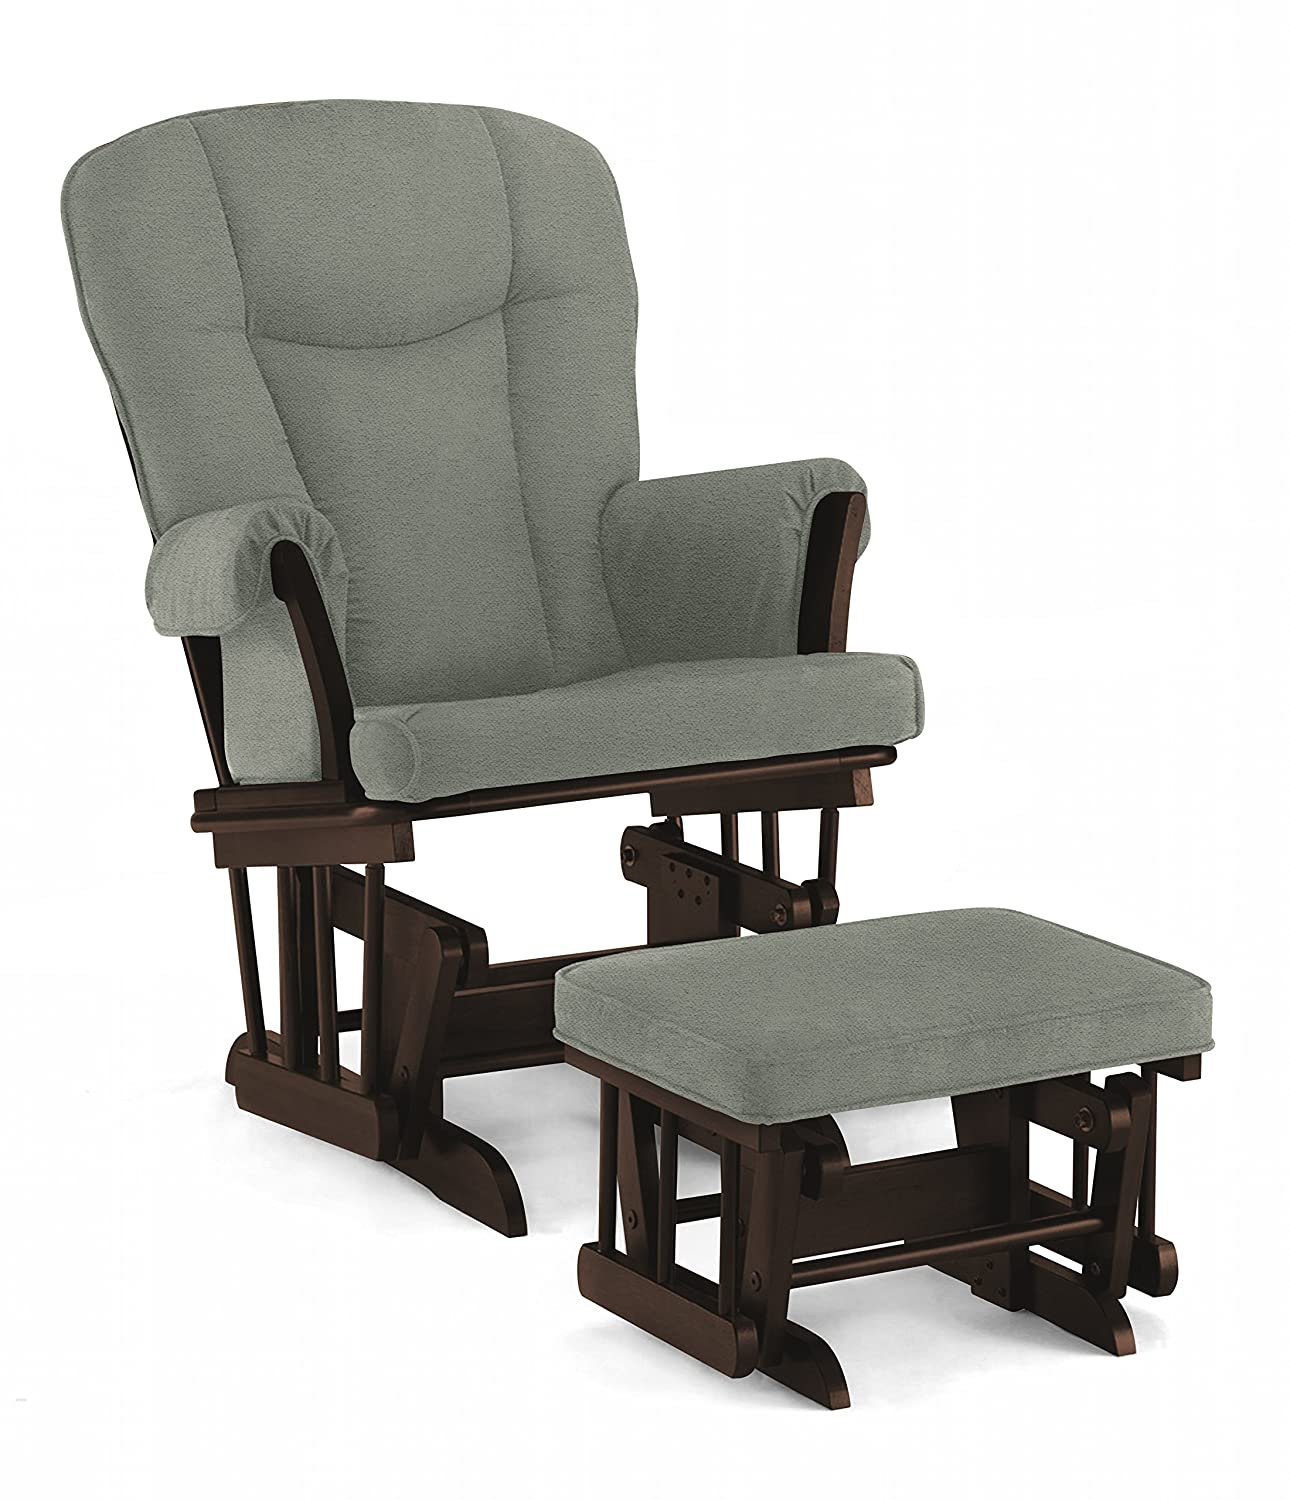 Stupendous Lennox Stanton Transitional Style Glider Chair And Ottoman Combo Espresso With Grey Short Links Chair Design For Home Short Linksinfo